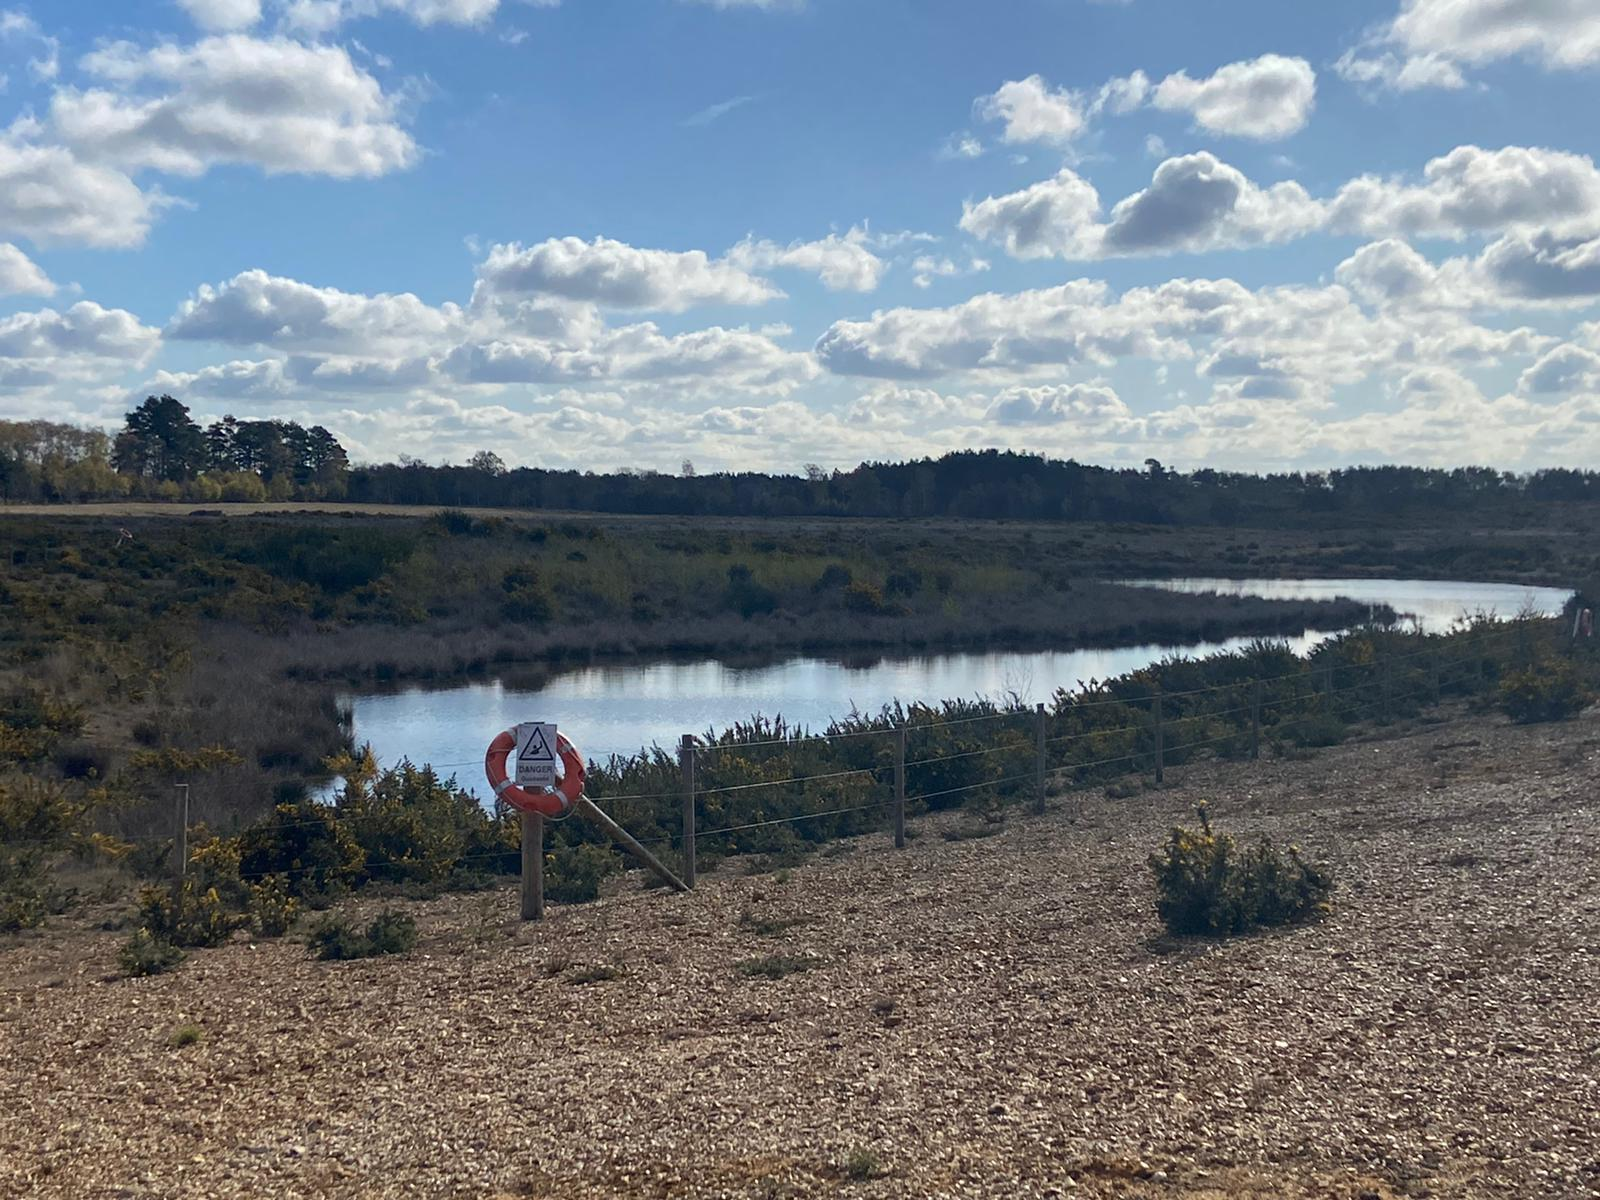 Photograph of Eversley Quarry showing stony habitat, gorse scrub and open water